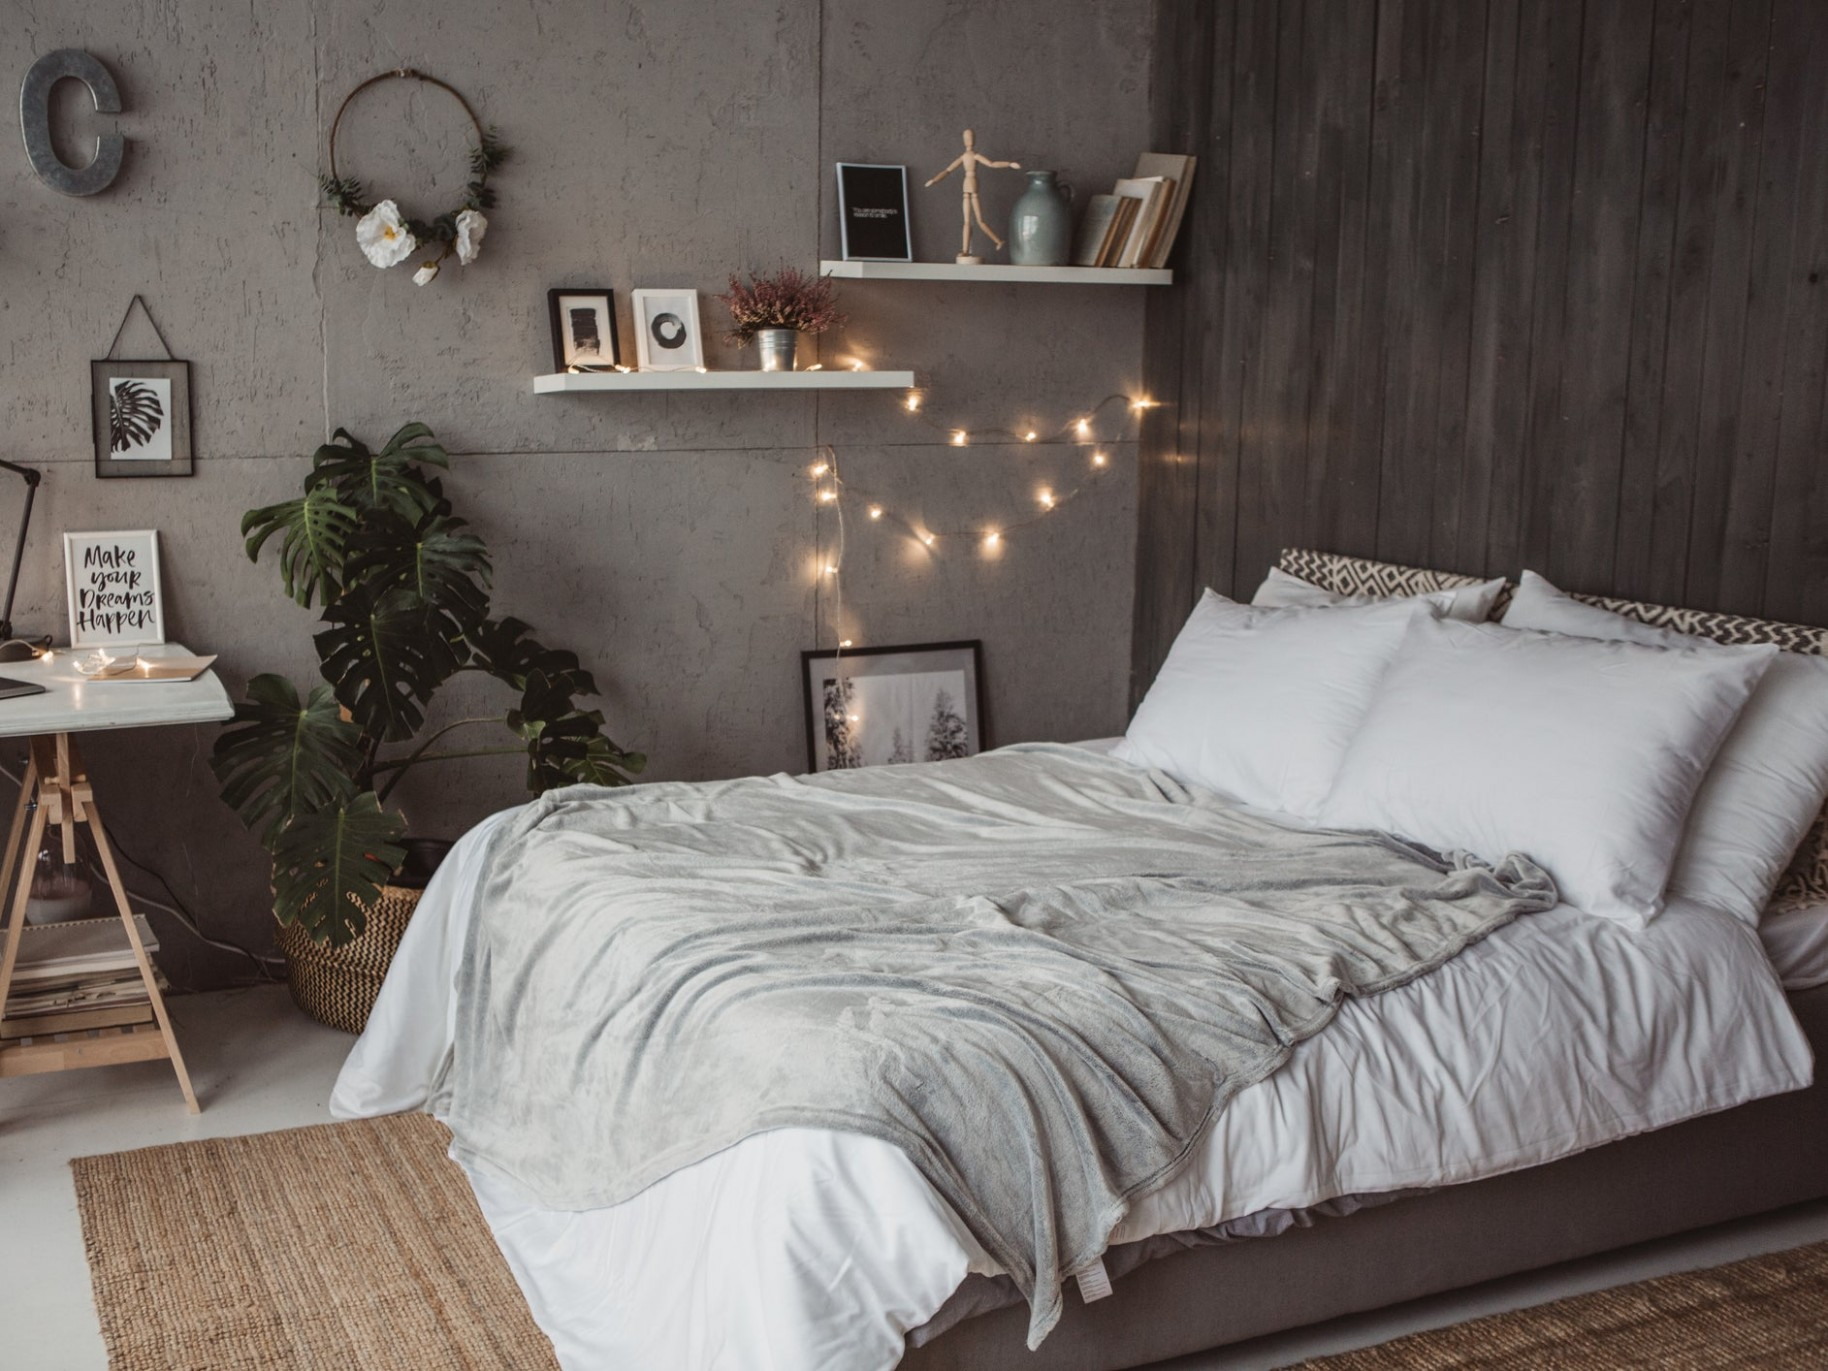 Bedrooms Without Windows: Is It Right For You?  Millionacres - Bedroom Ideas No Windows